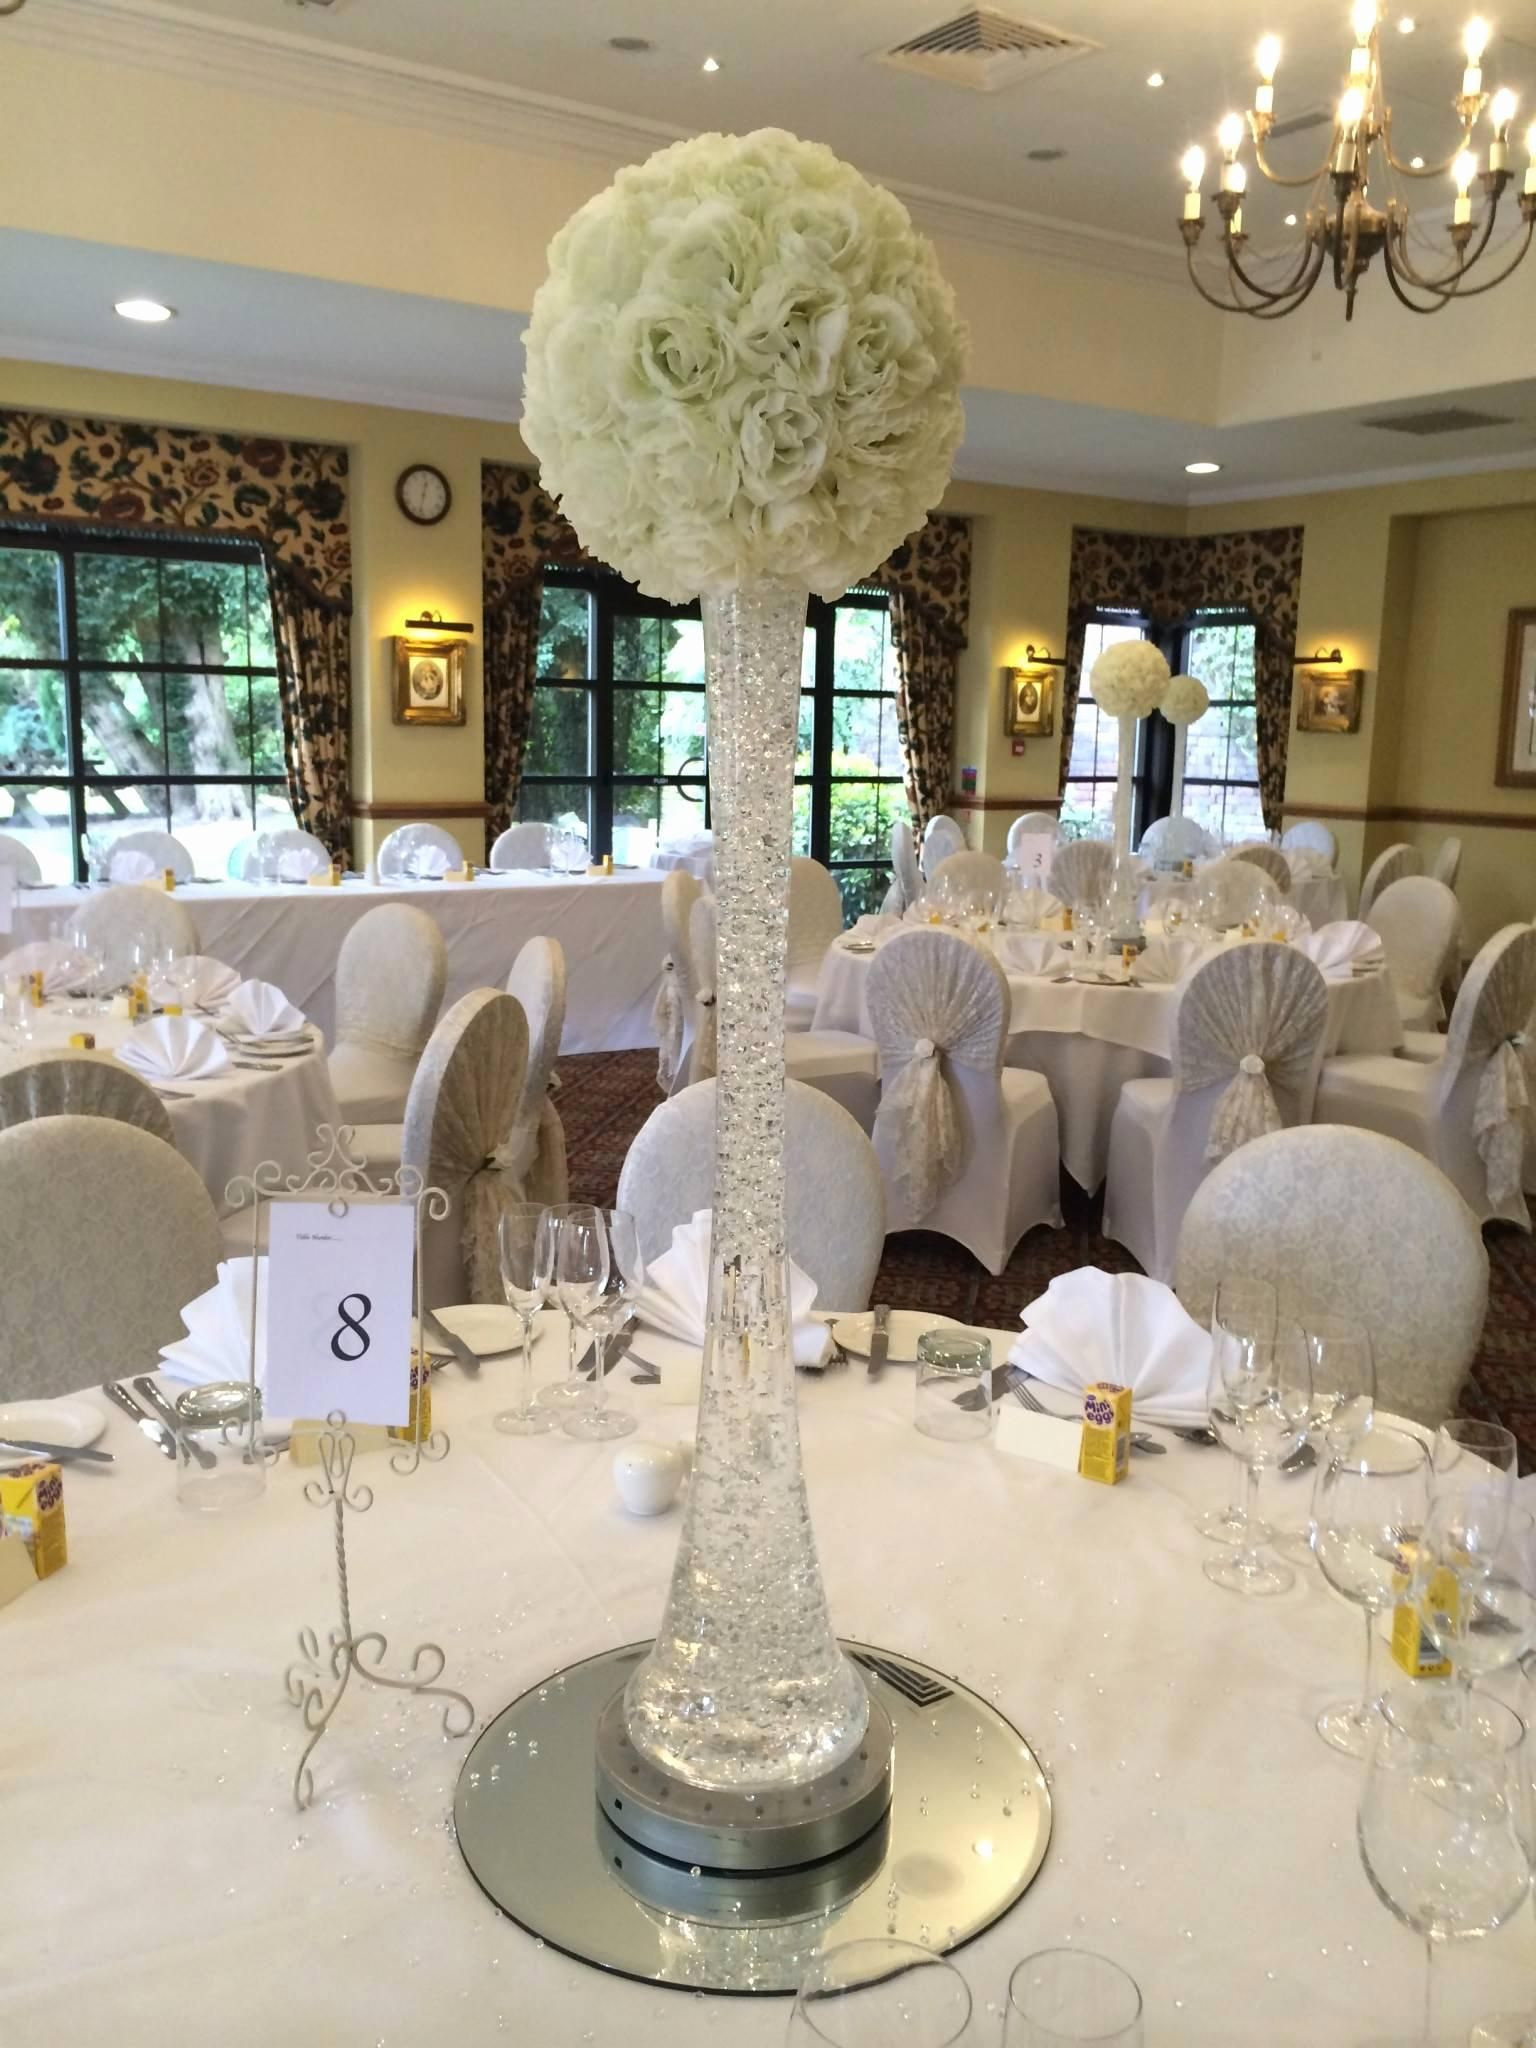 wedding centerpieces using vases of 47 vase centerpiece ideas the weekly world throughout tall vase centerpiece ideas vases flowers in water 0d artificial